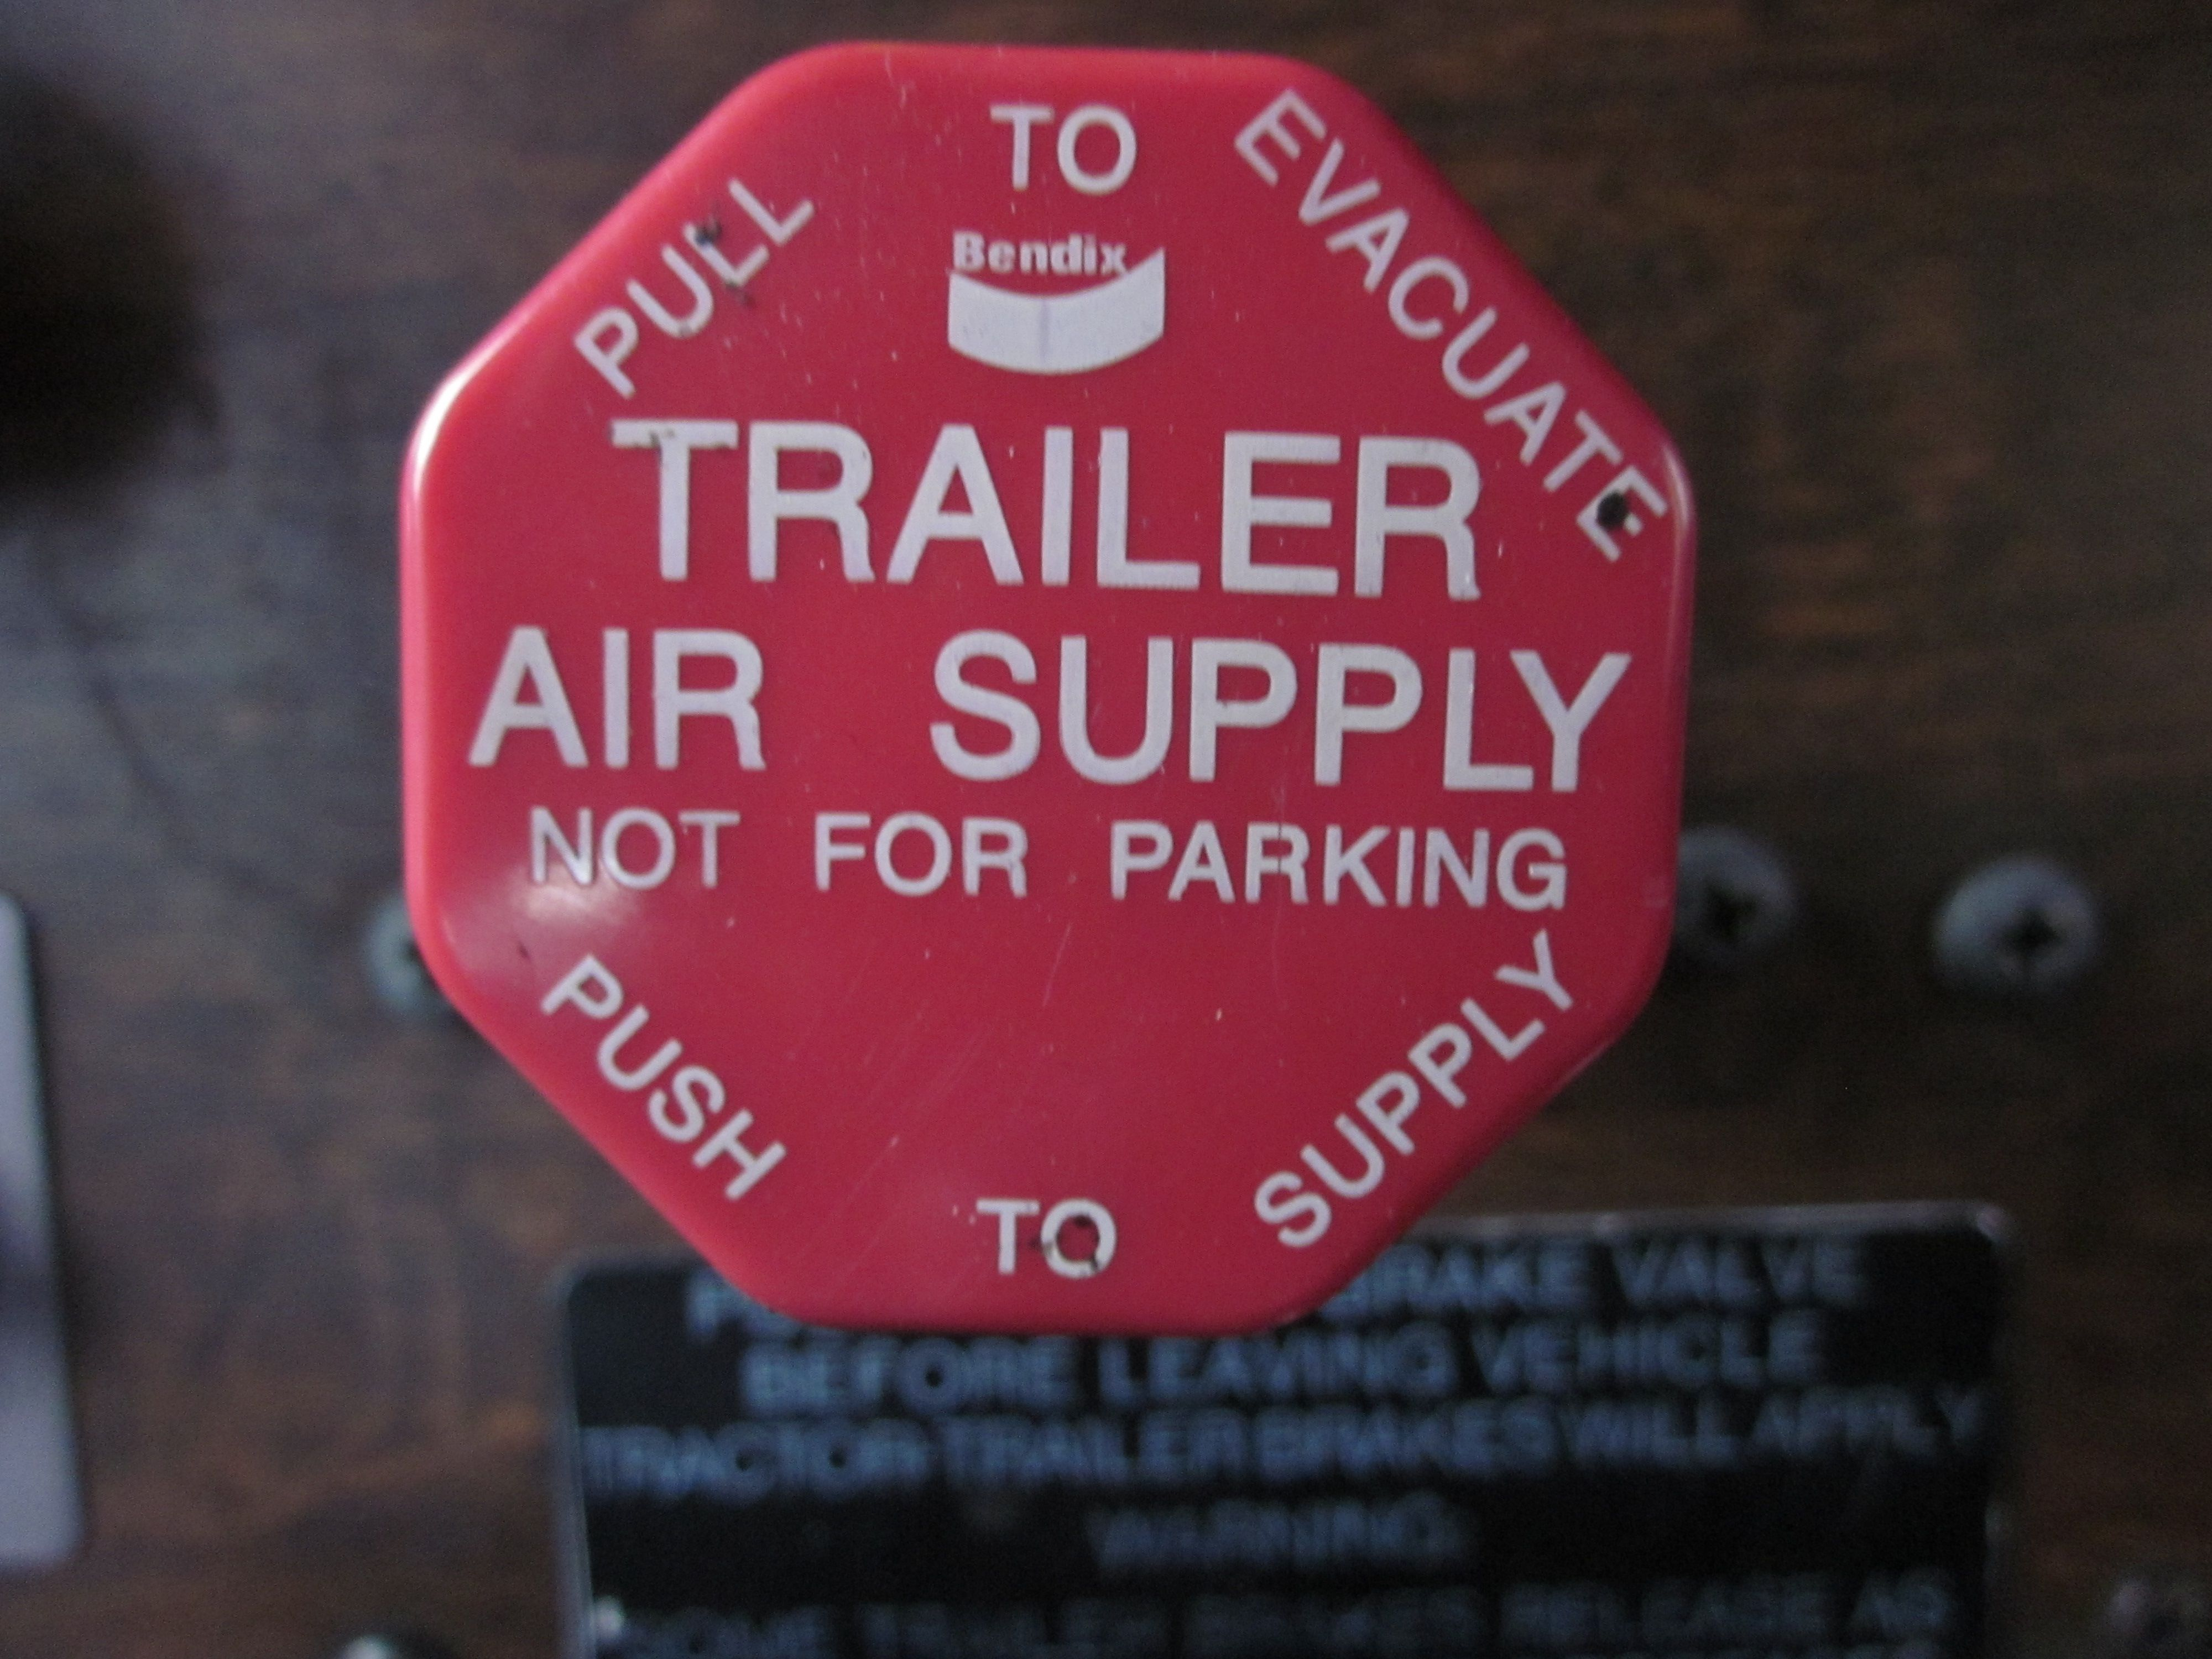 Trailer Air Supply push to release trailer brakes and